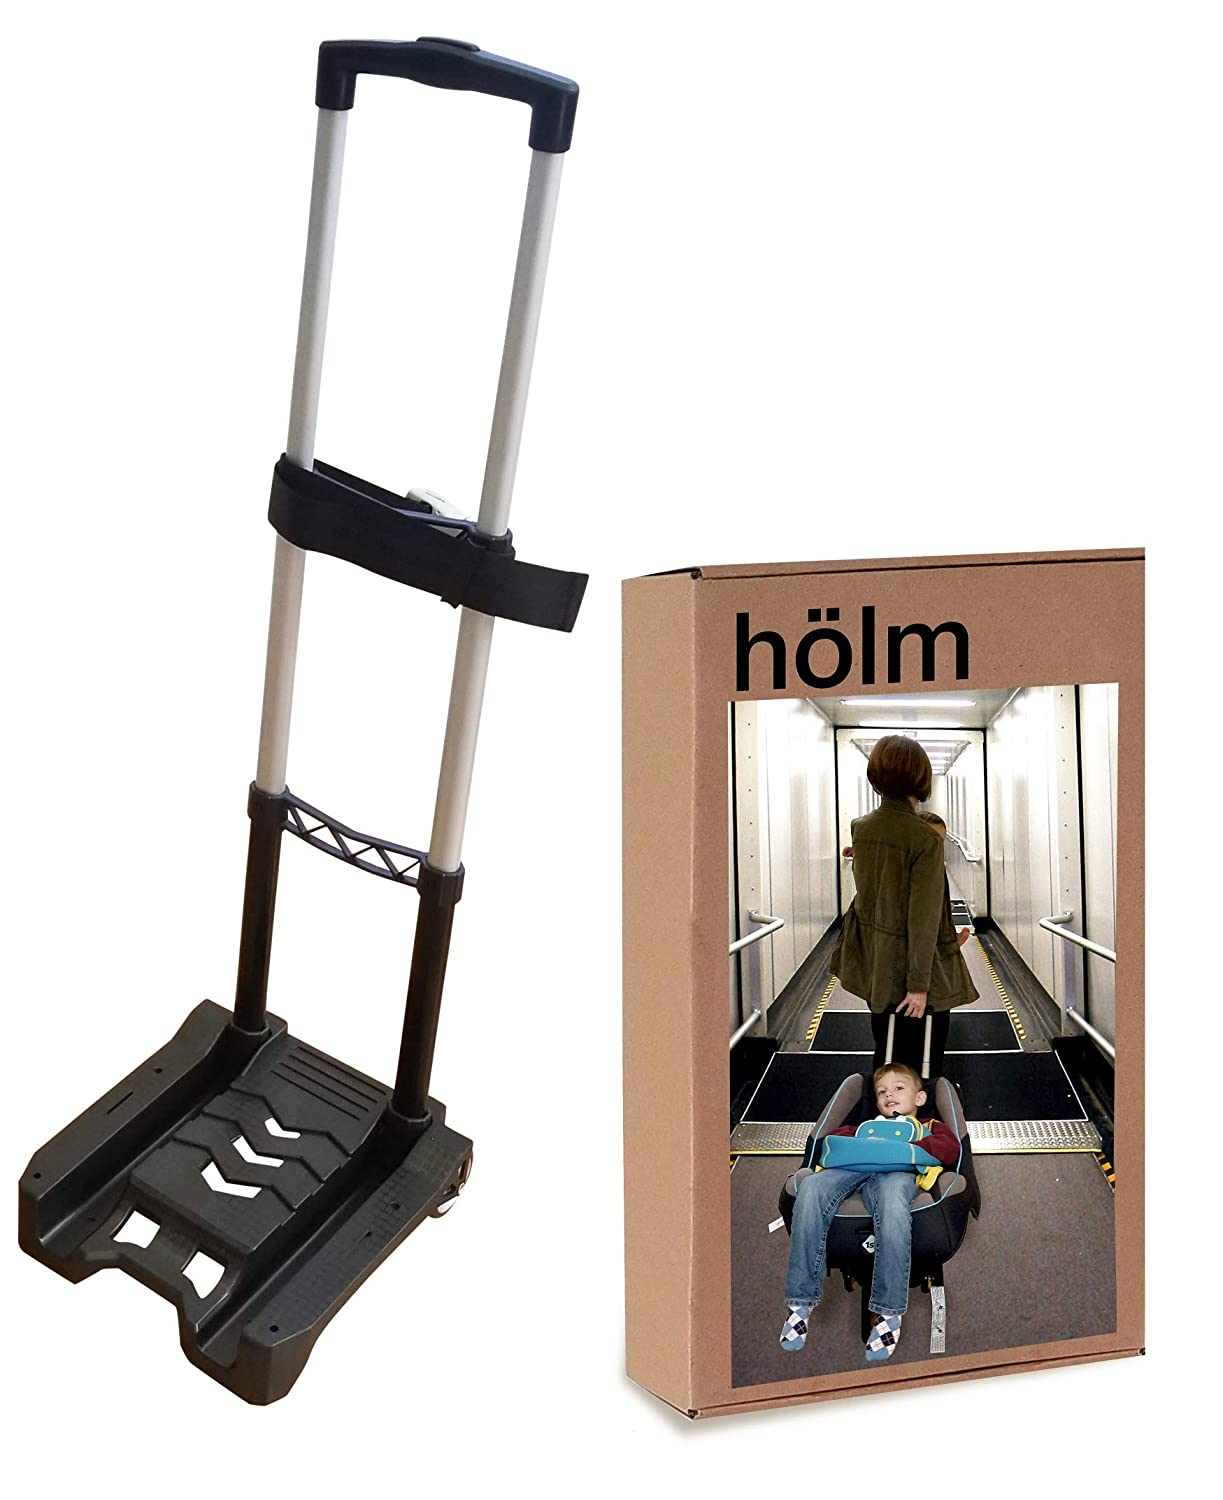 A Carseat Roller for Traveling Foldable and stowable Under Your Airplane seat or Over Head Compartment. storable Holm Airport Car Seat Stroller Travel Cart and Child Transporter